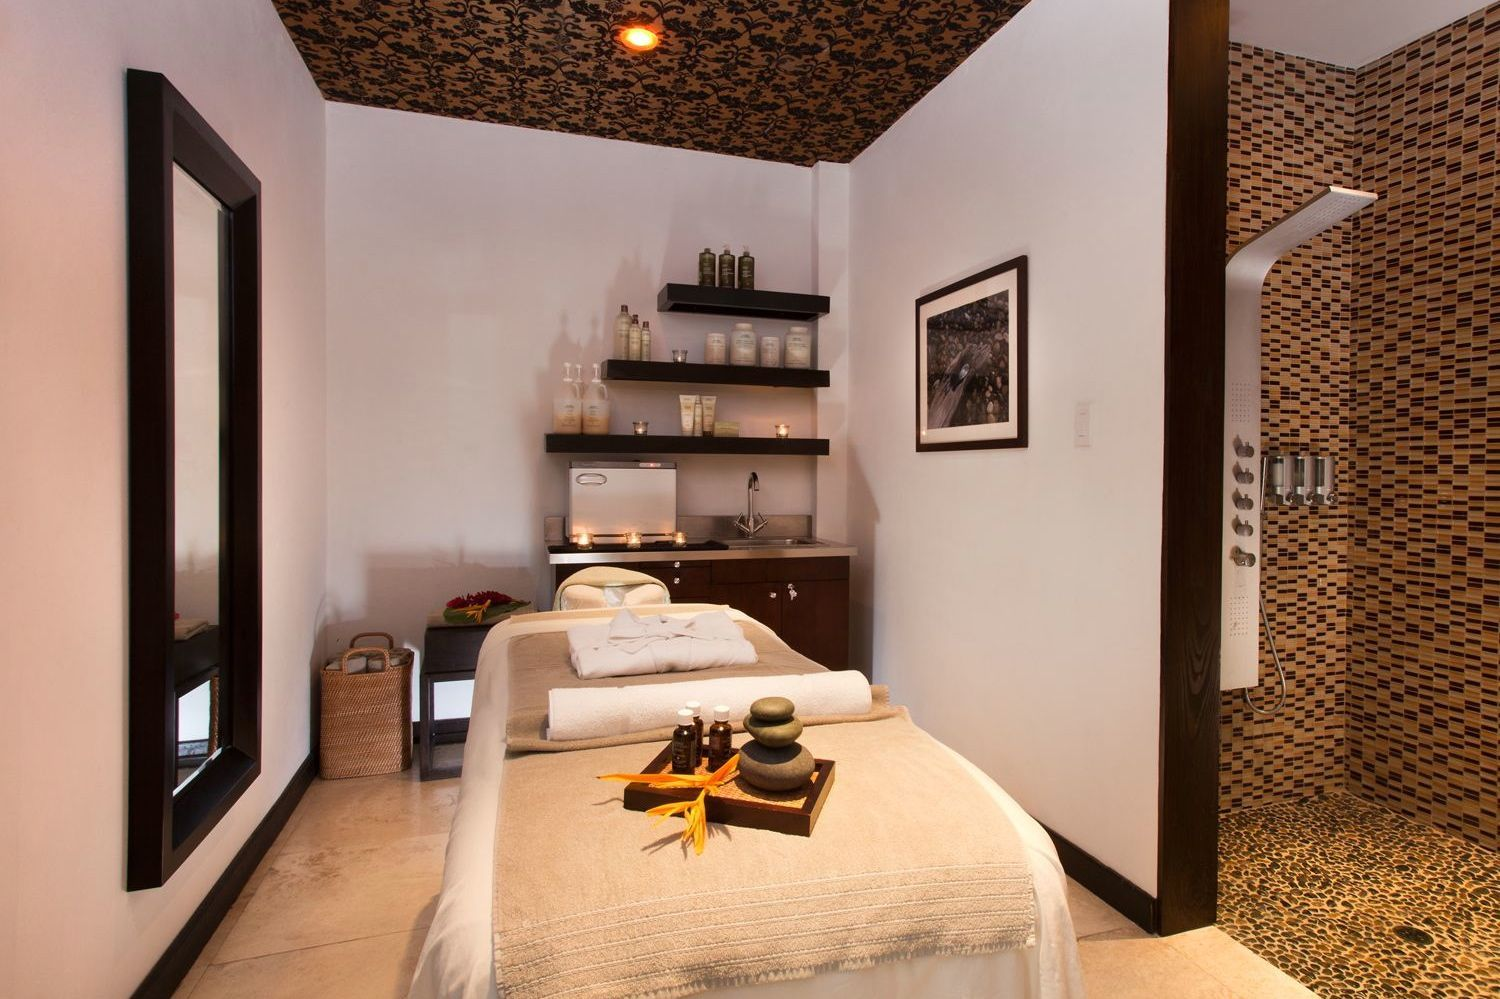 Genial Pictures Of Spa Treatment Rooms | How To Create A Massage Room In Your Home: